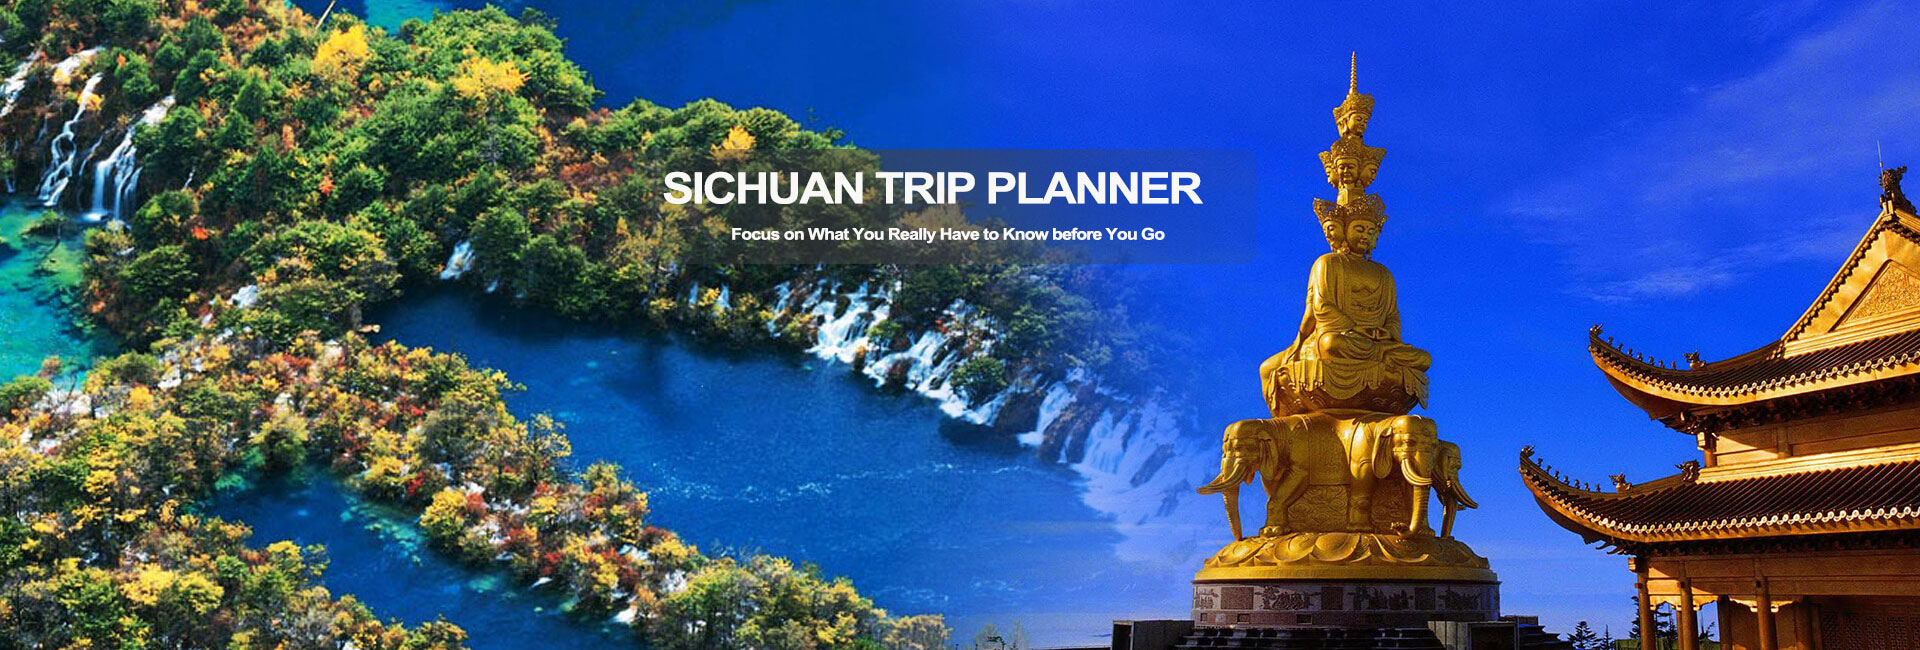 How to Plan Sichuan Trip 2021